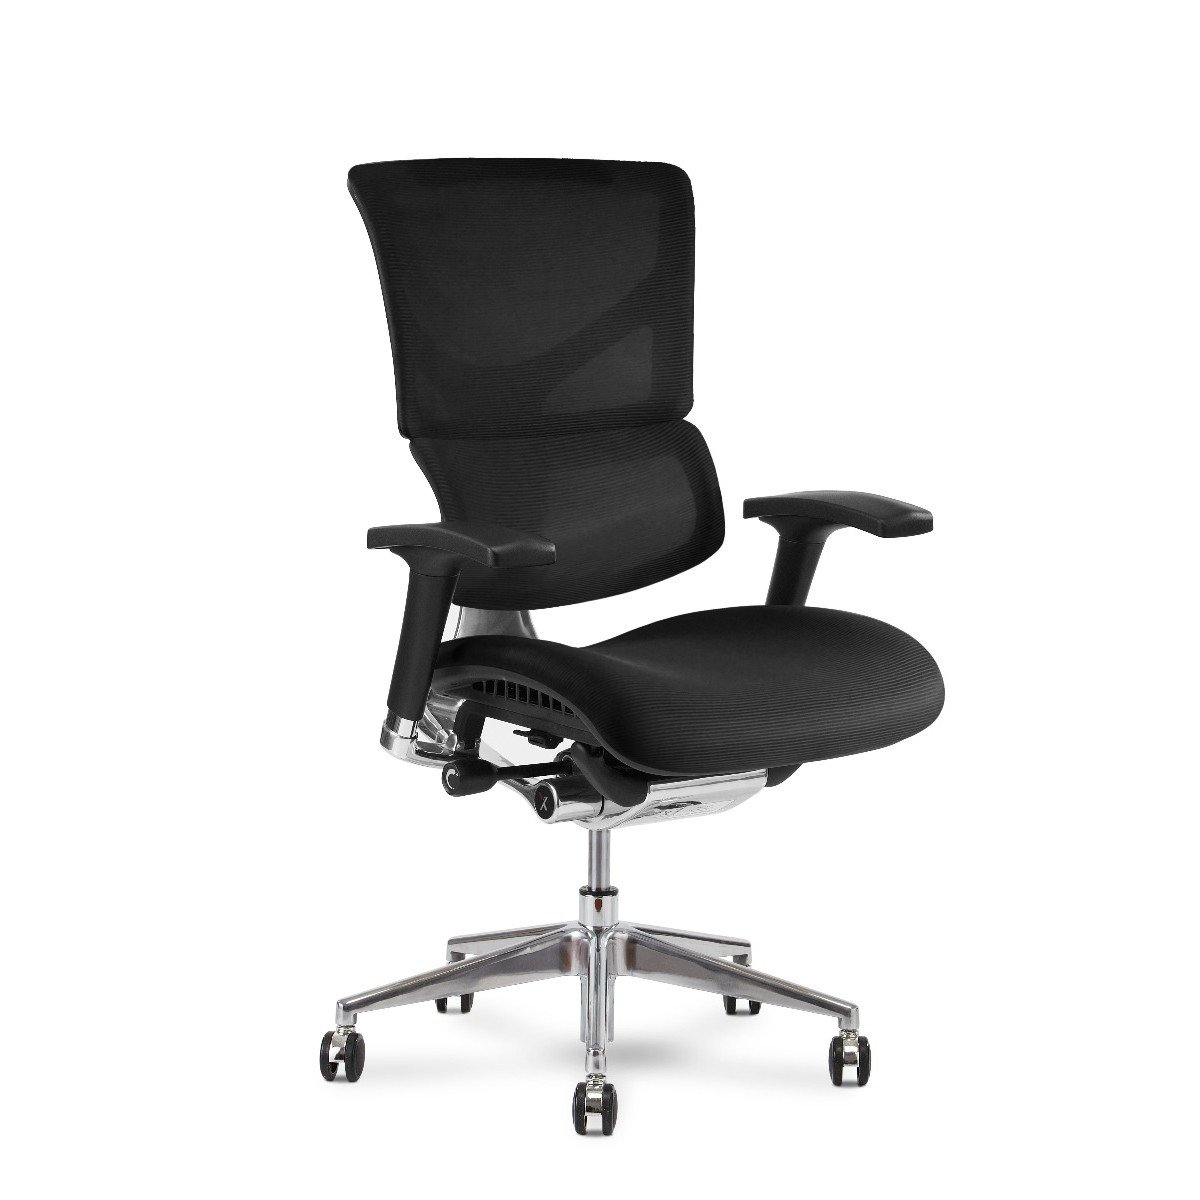 X Chair - X3 Premium Task Chair - Duckys Office Furniture